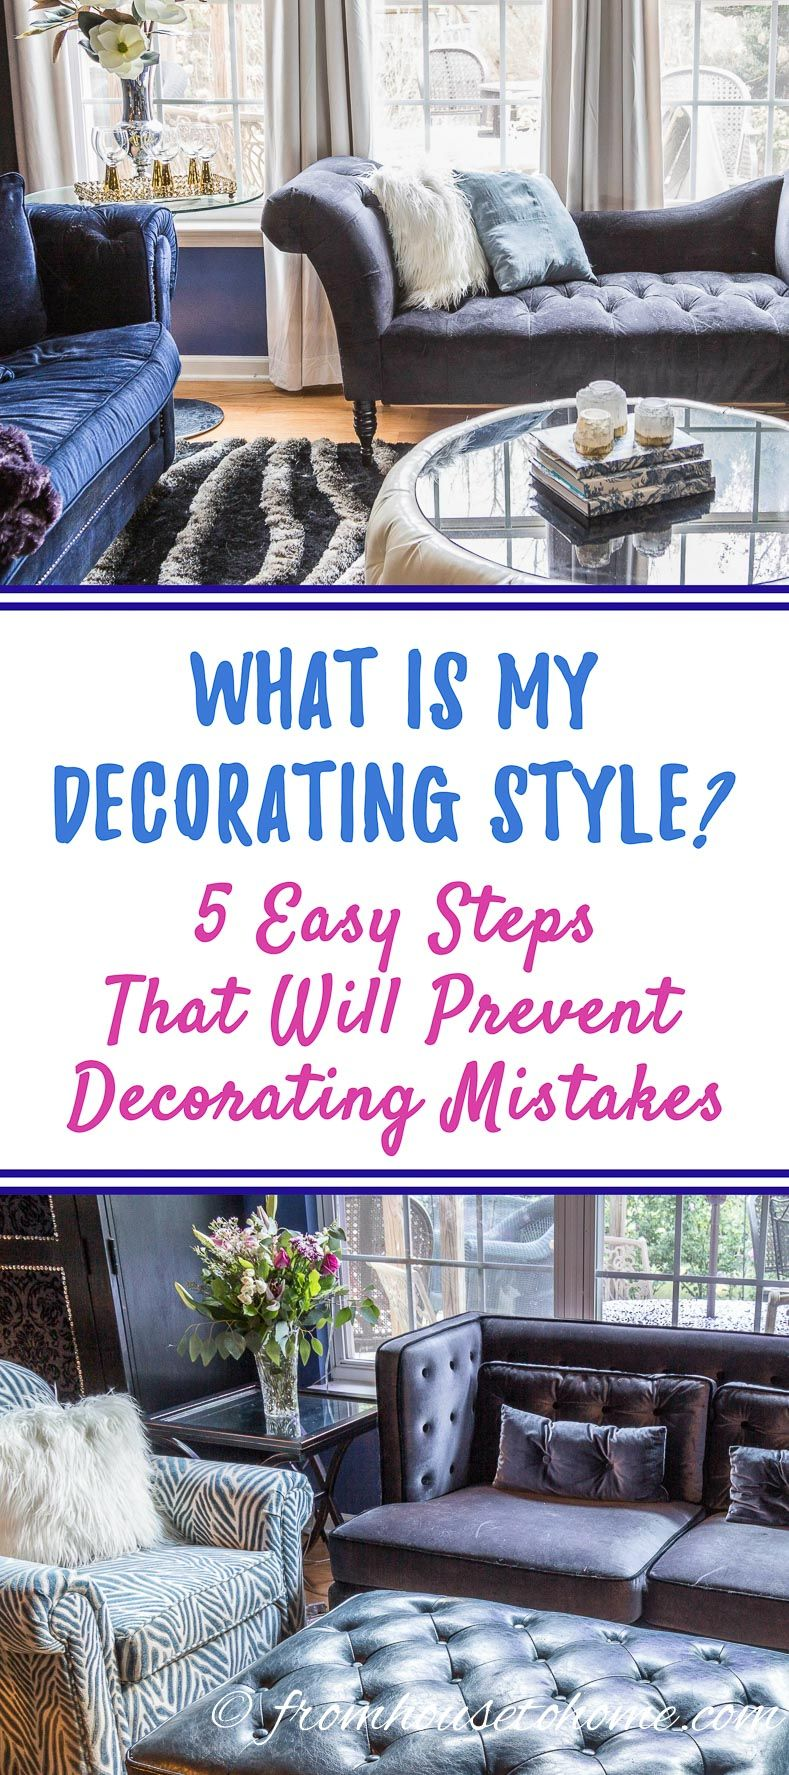 What Is My Decorating Style? 5 Easy Steps That Will Prevent Mistakes | If  You